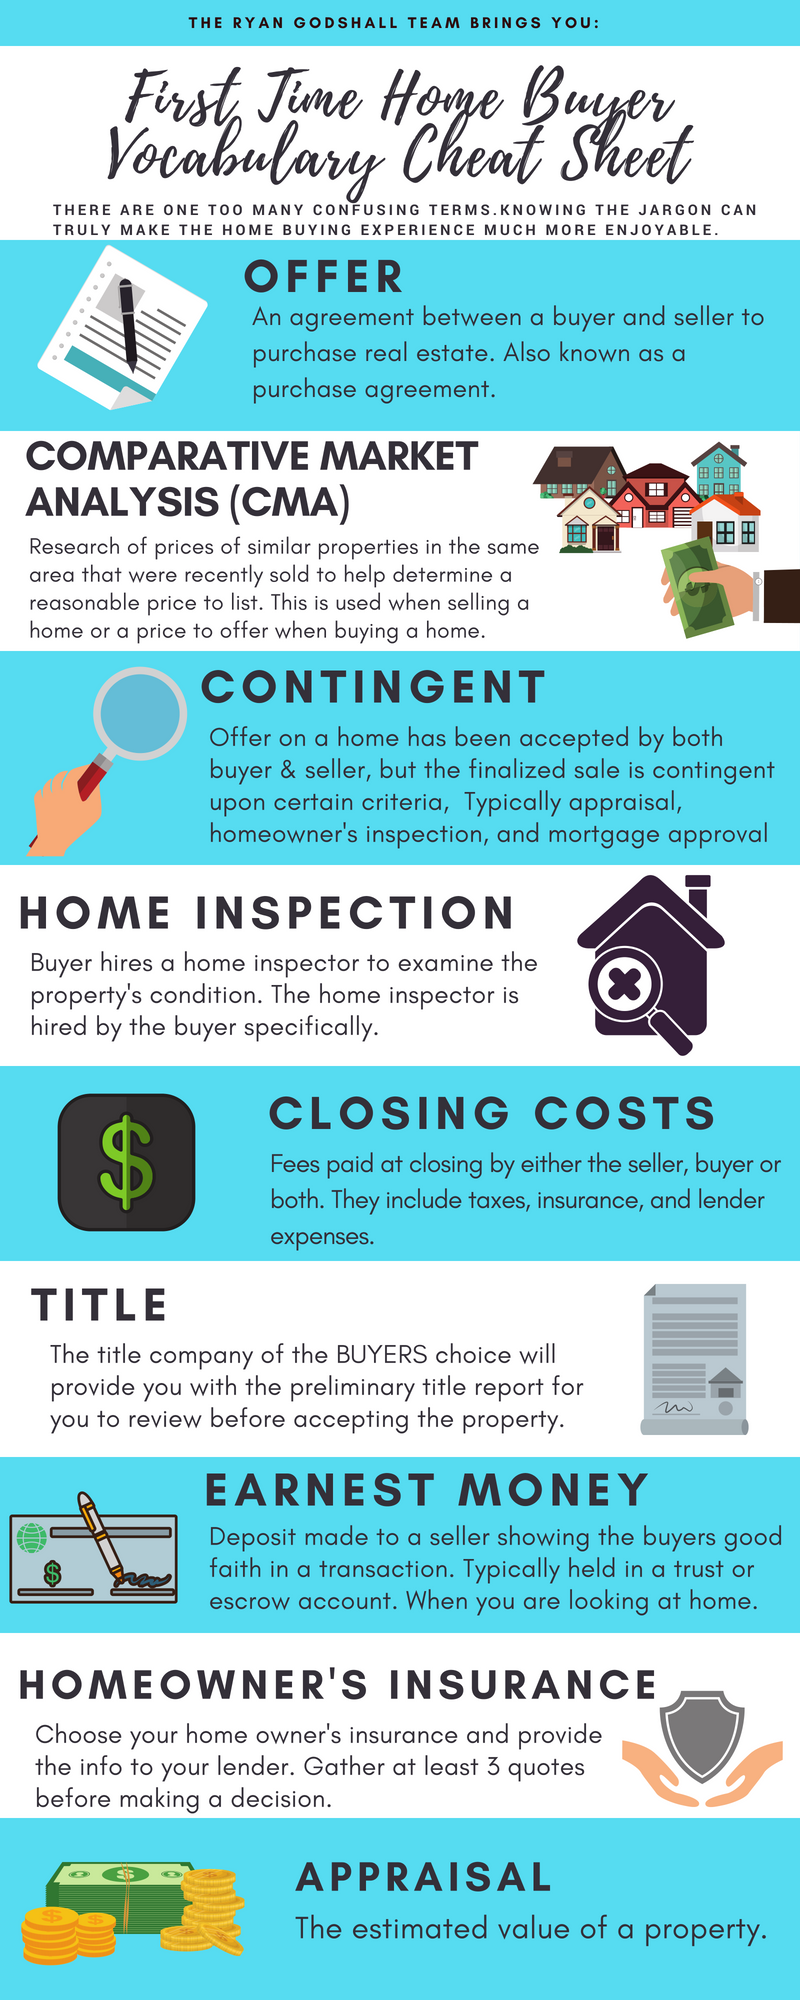 First Time Home Buyer Vocabulary Cheat Sheet First Time Home Buyers Mortgage Humor Home Buying